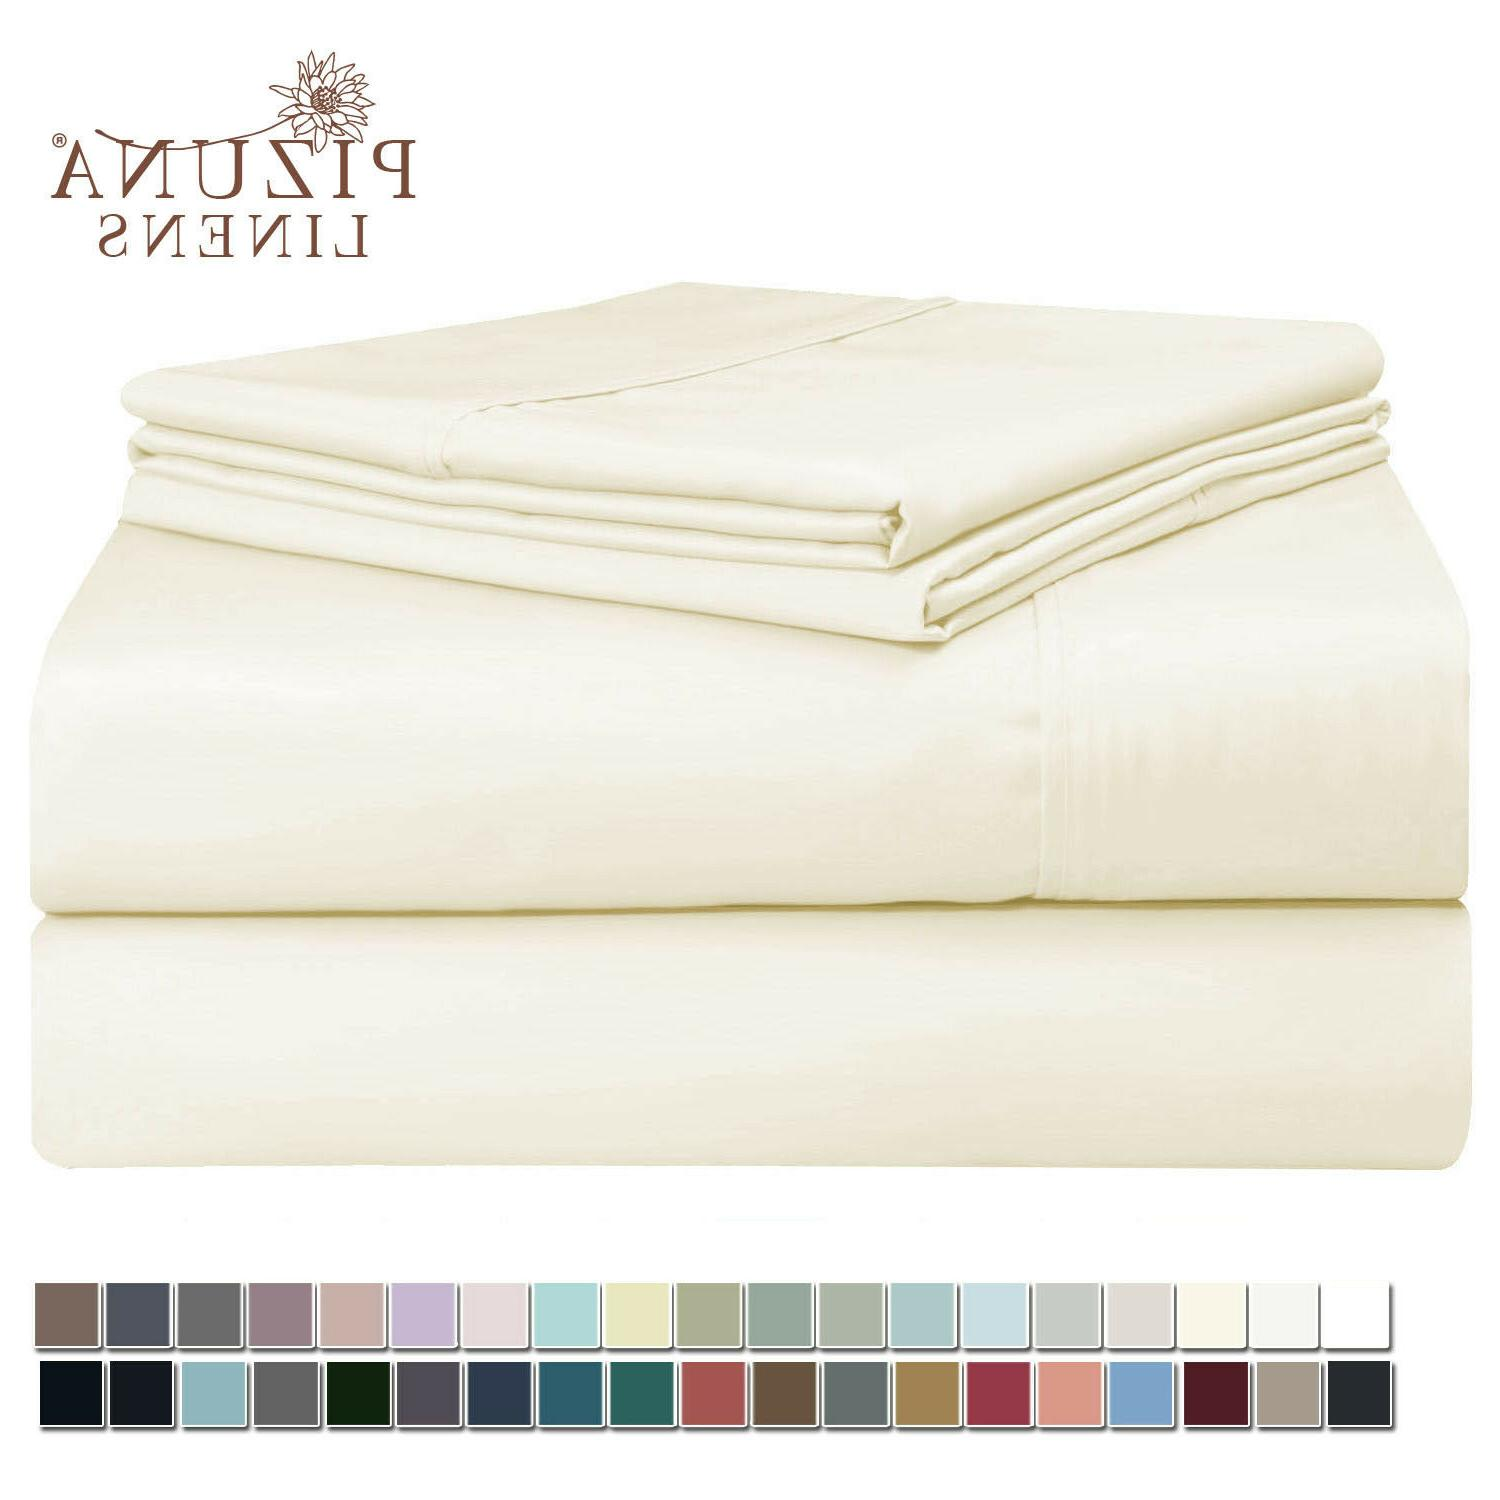 Divatex Flannel from Portugal 4 Piece King Sized White Flann